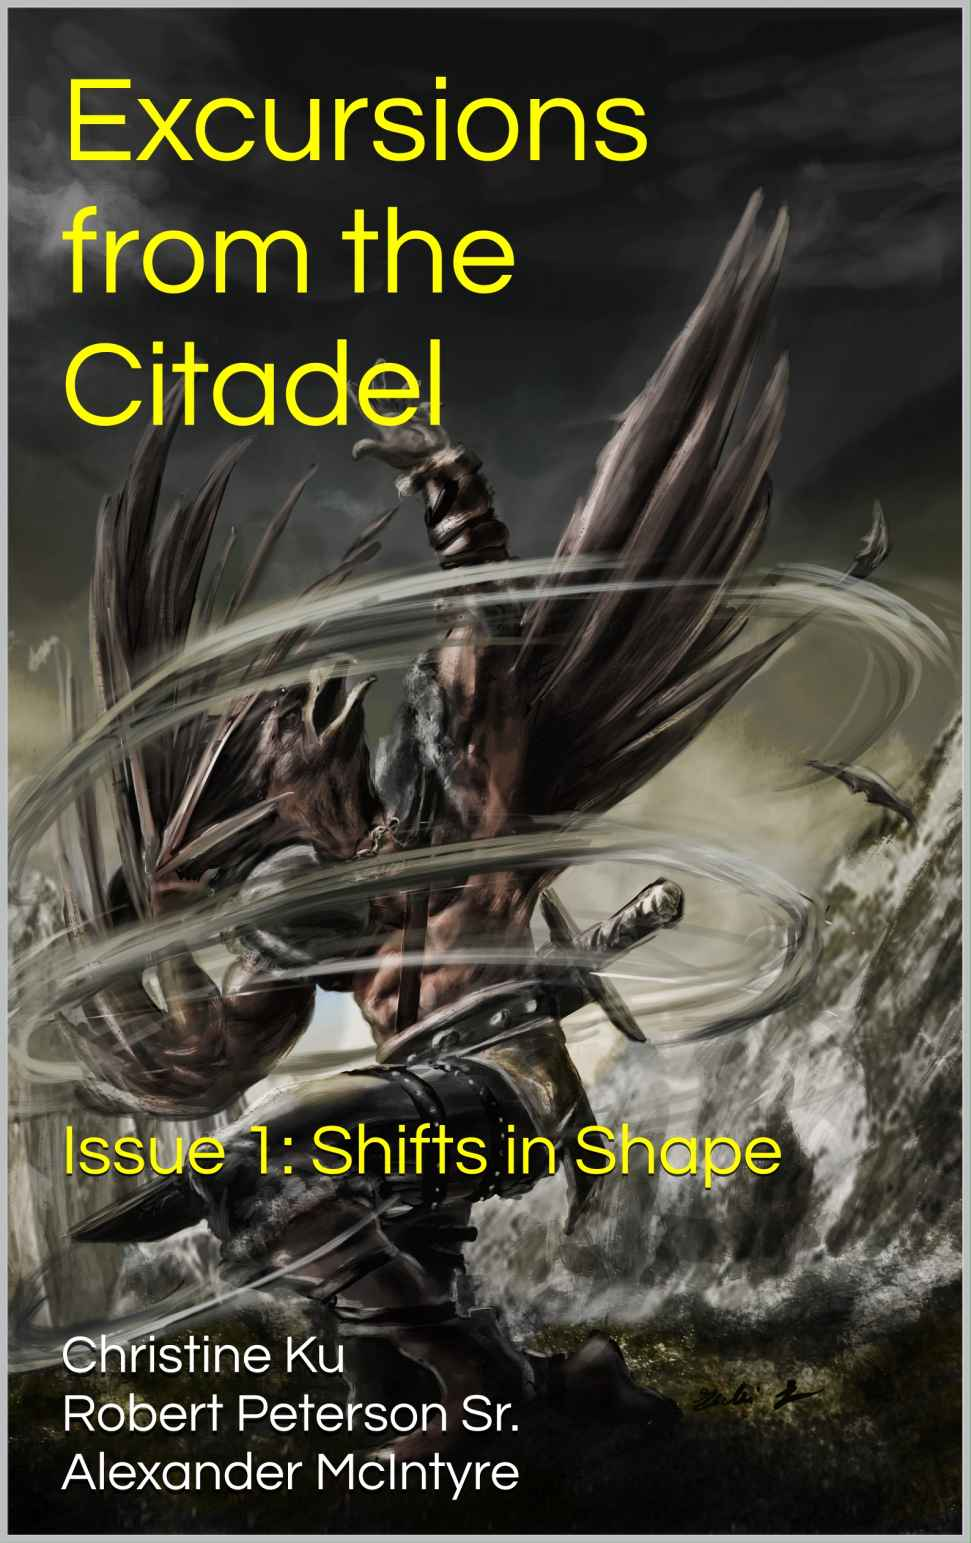 Excursions from the Citadel: Issue 1: Shifts in Shape